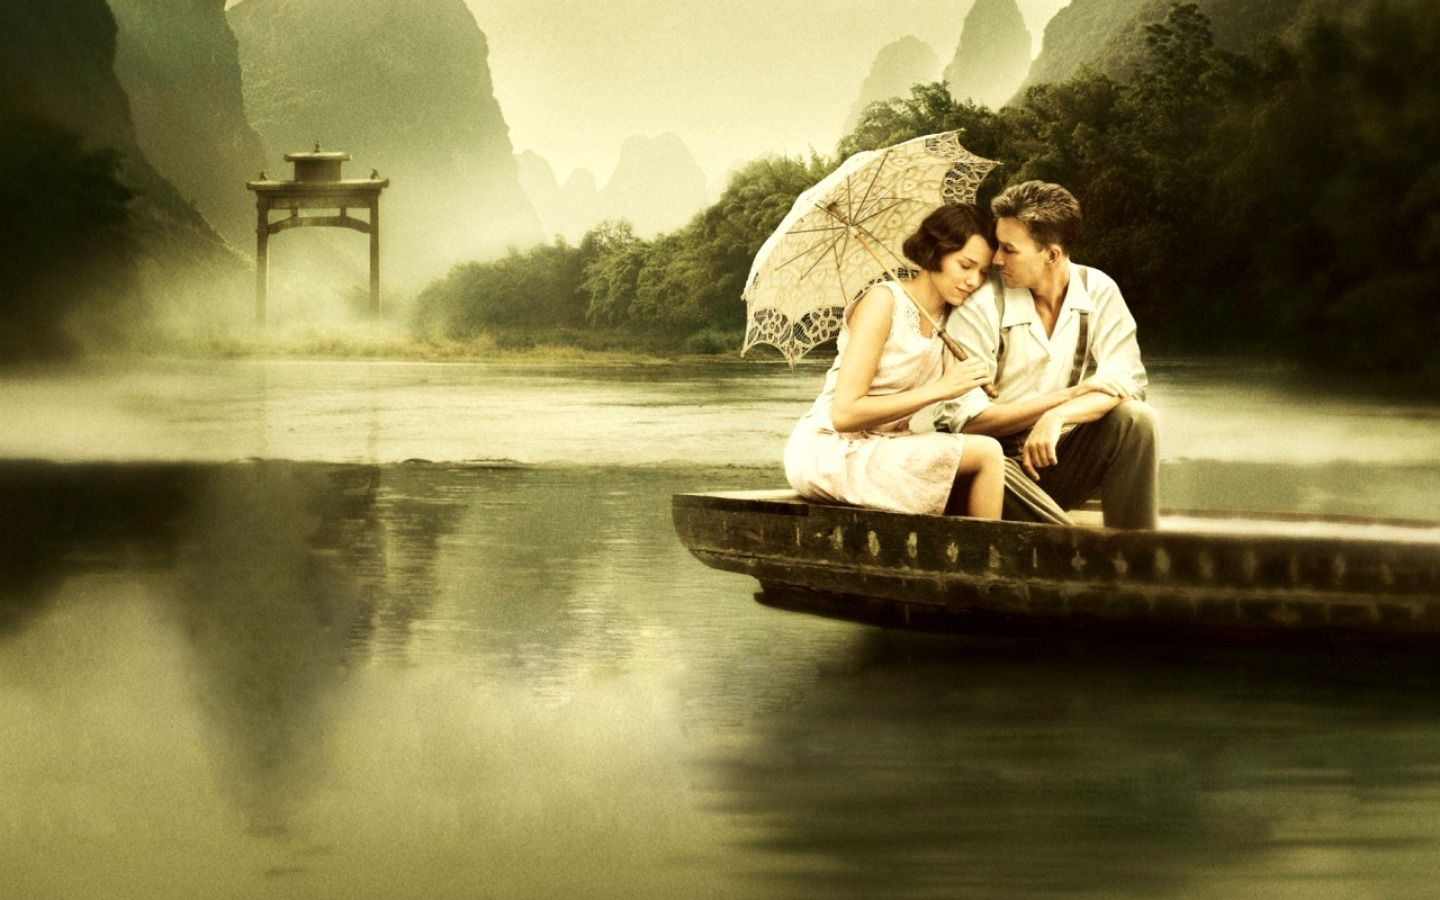 New Images Of Love Couple Download Love Couple Wallpaper Free Download Hd Wallpapers Regarding Im Cute Love Quotes Love Couple Wallpaper Love Couple Images